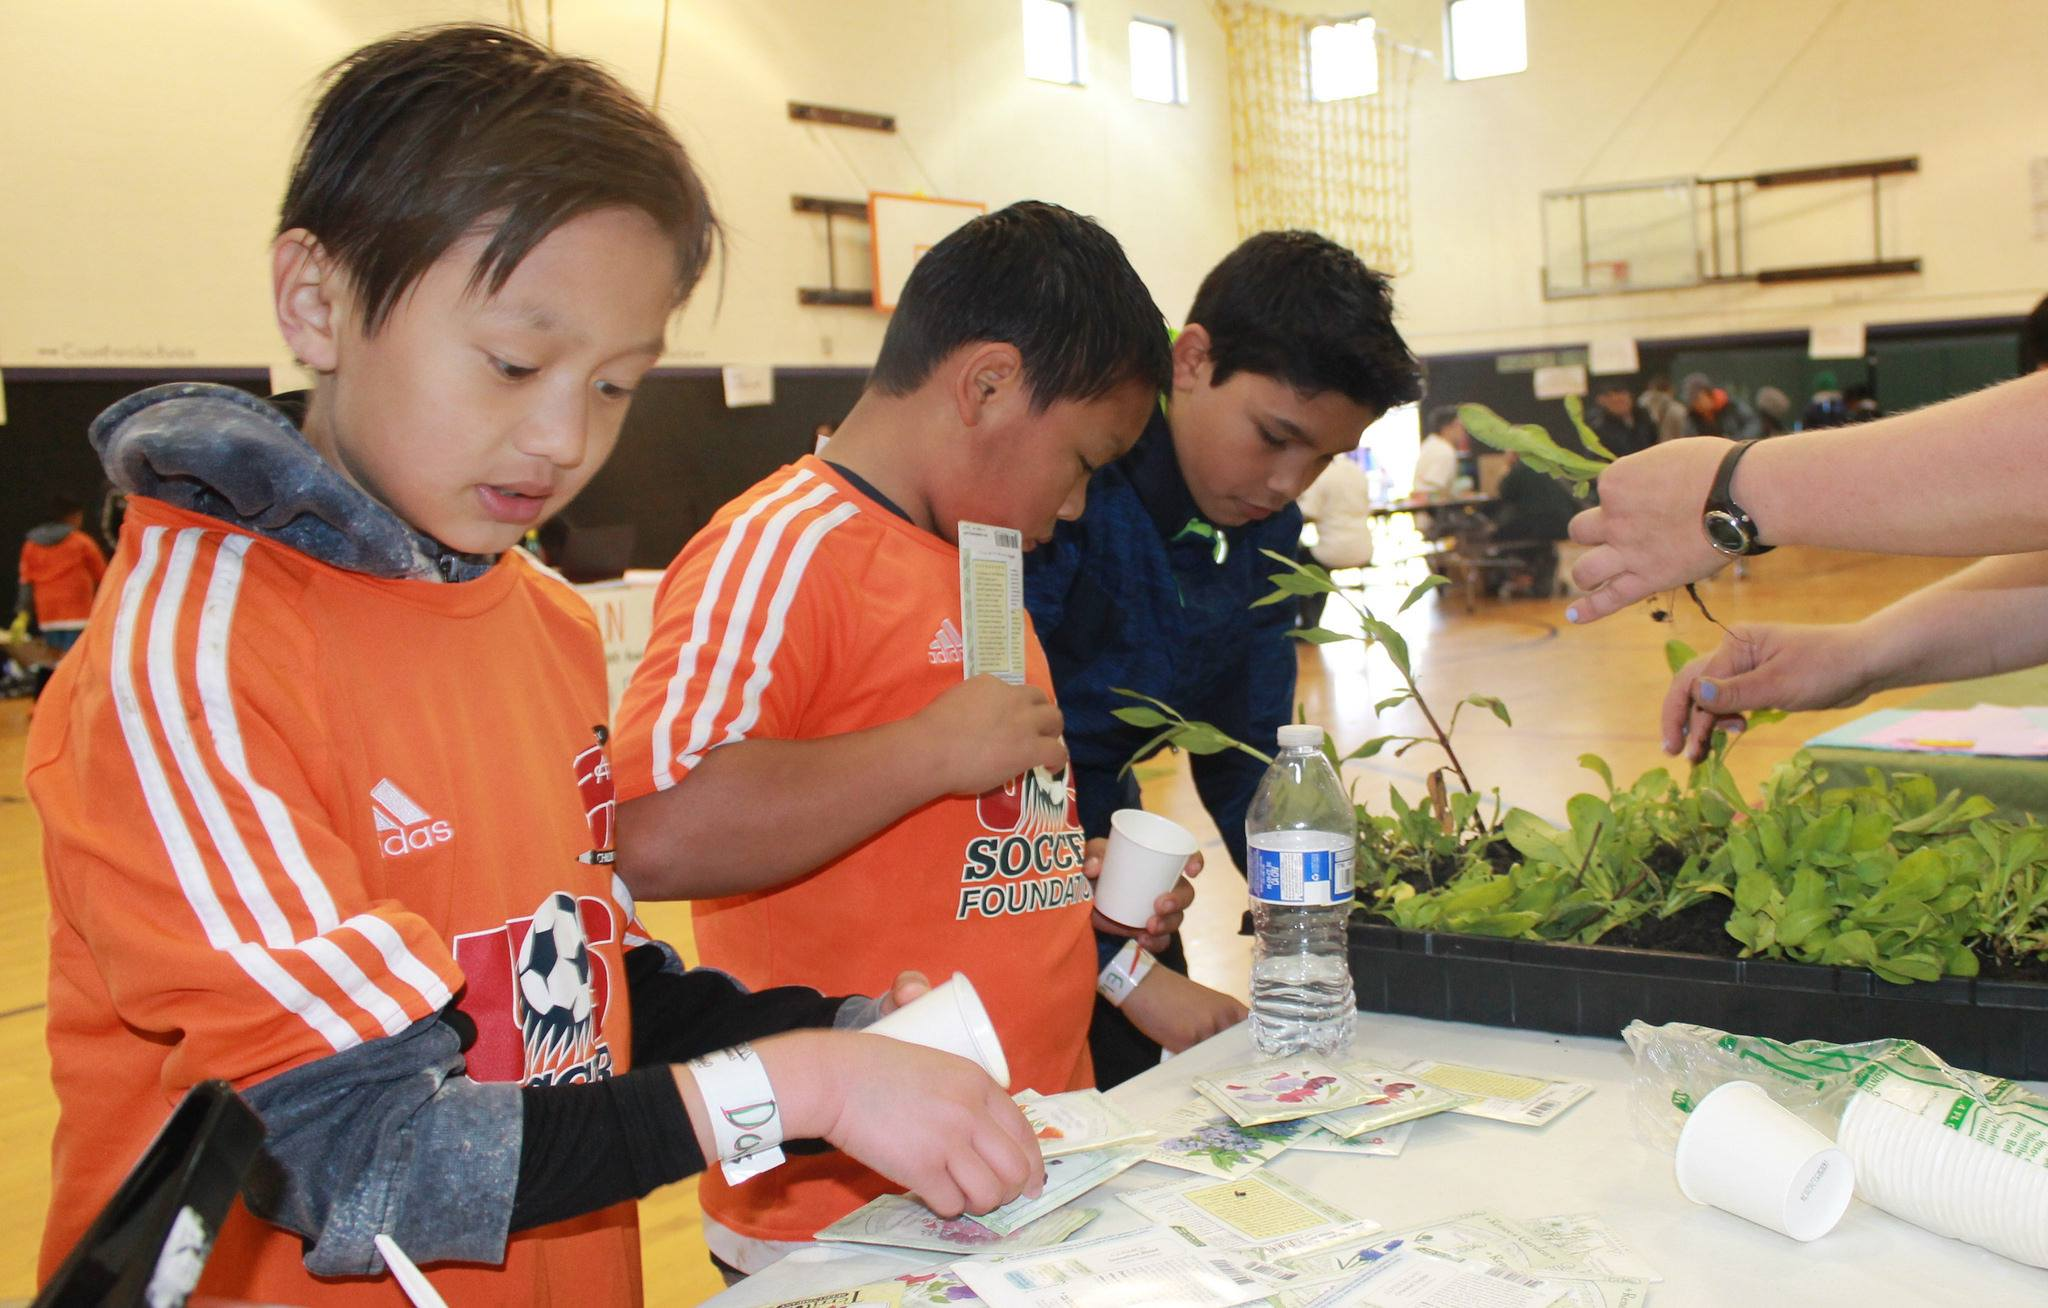 Community Cup - Resource booth - kids looking at seed starts and plants